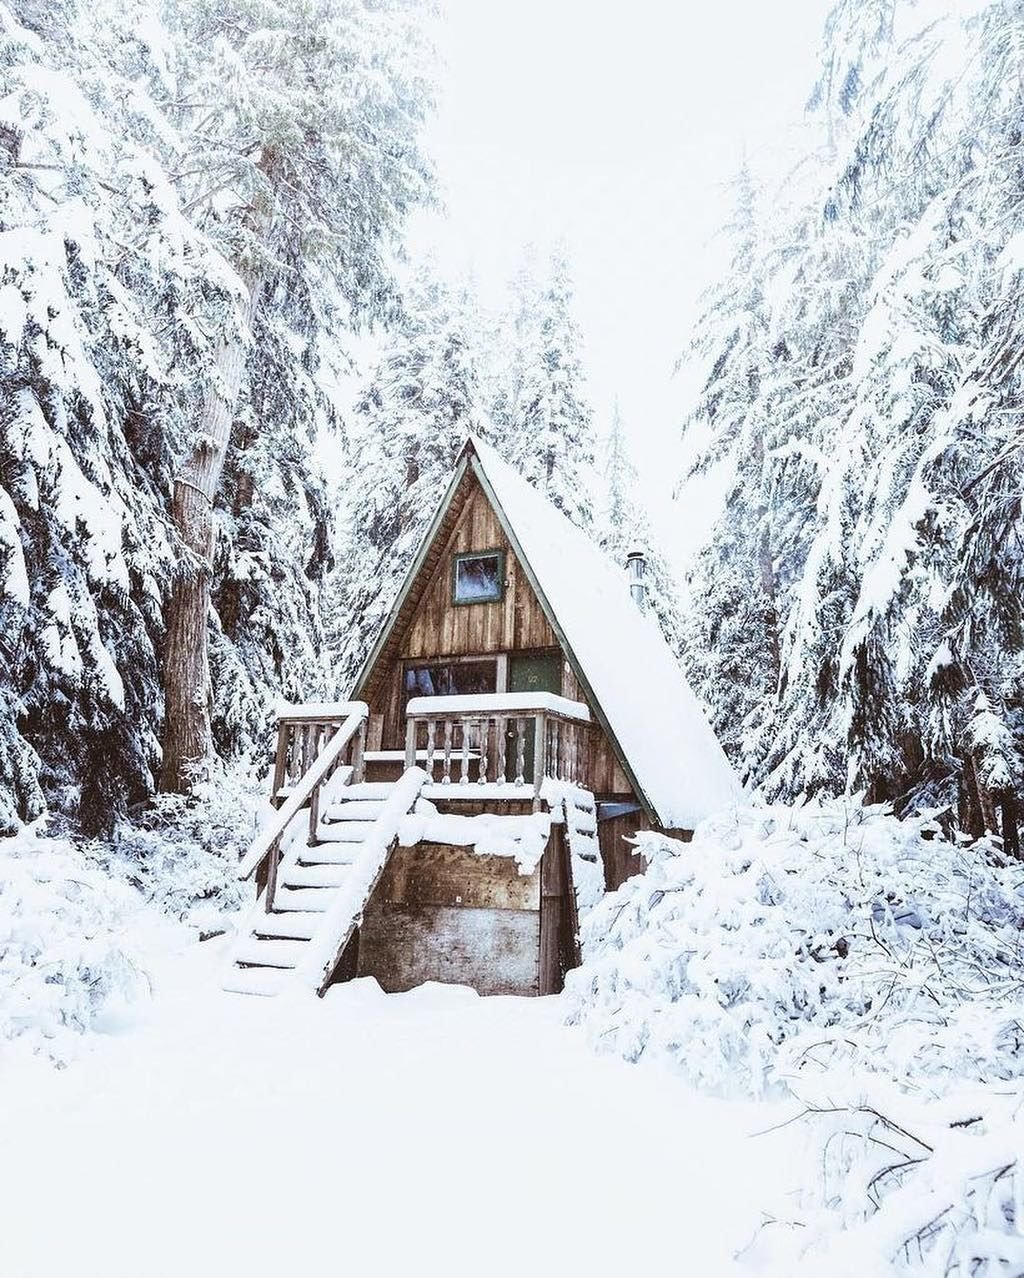 A log cabin symbolizes the embrace between civilization and nature ...